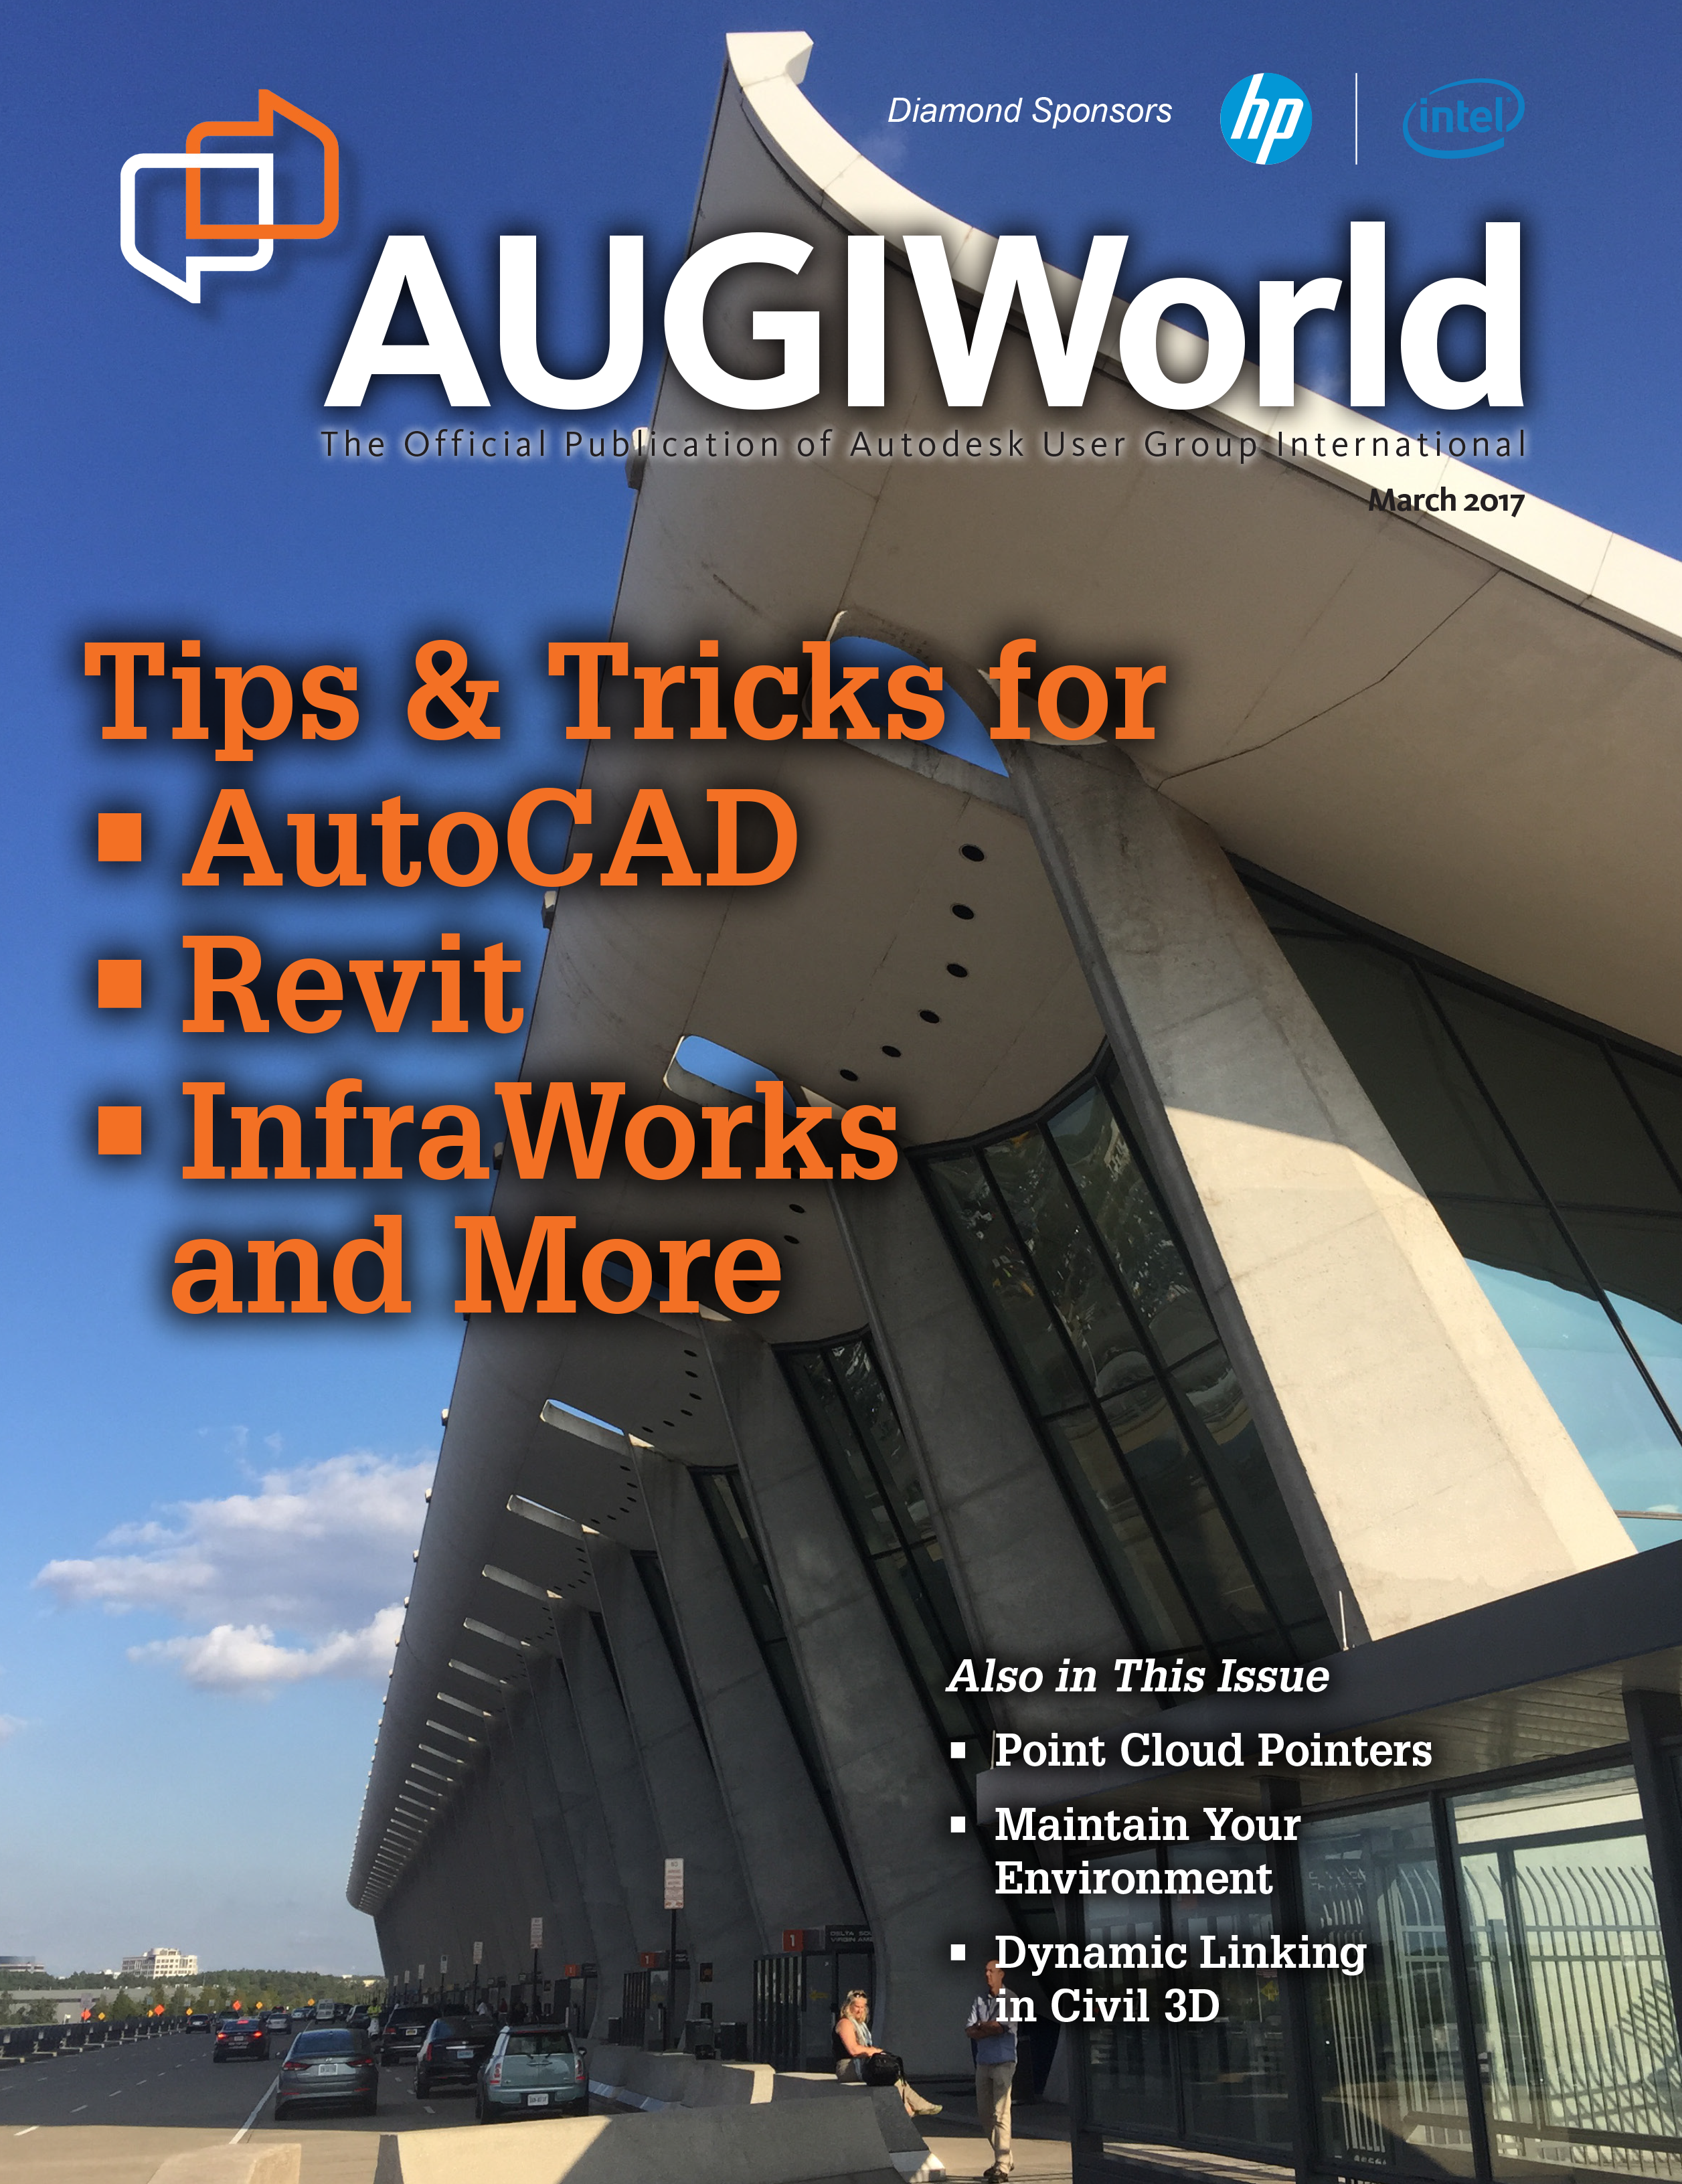 AUGIWorld March 2017